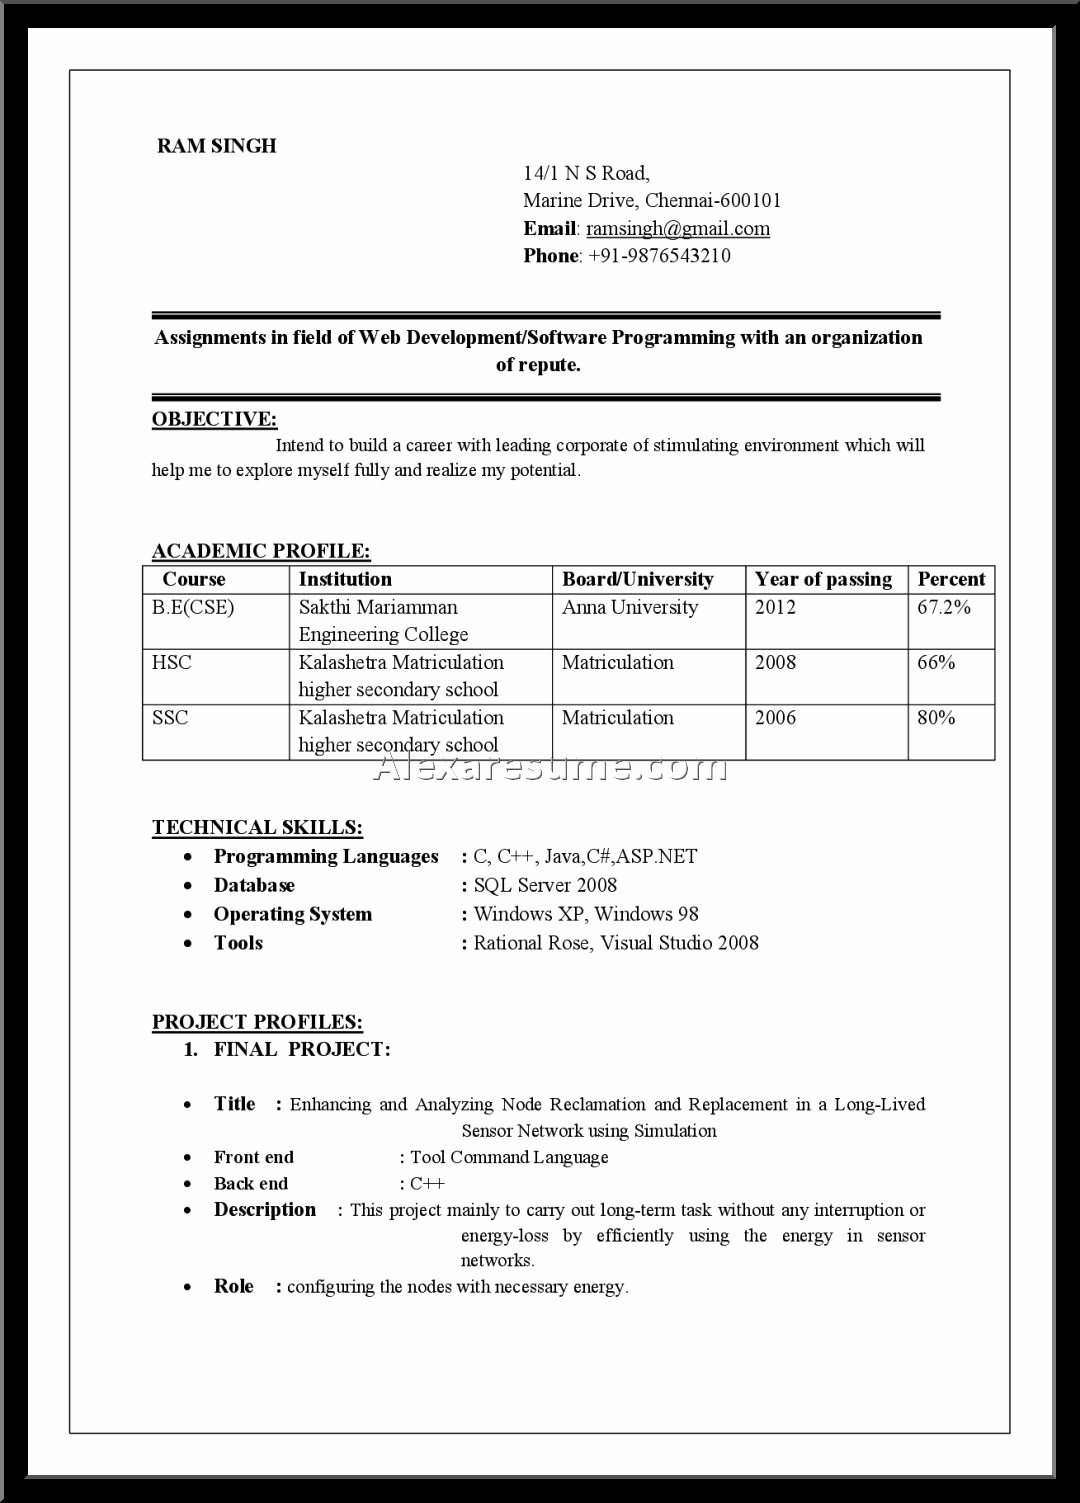 Microsoft Fice Resume format Free Templates for Freshers